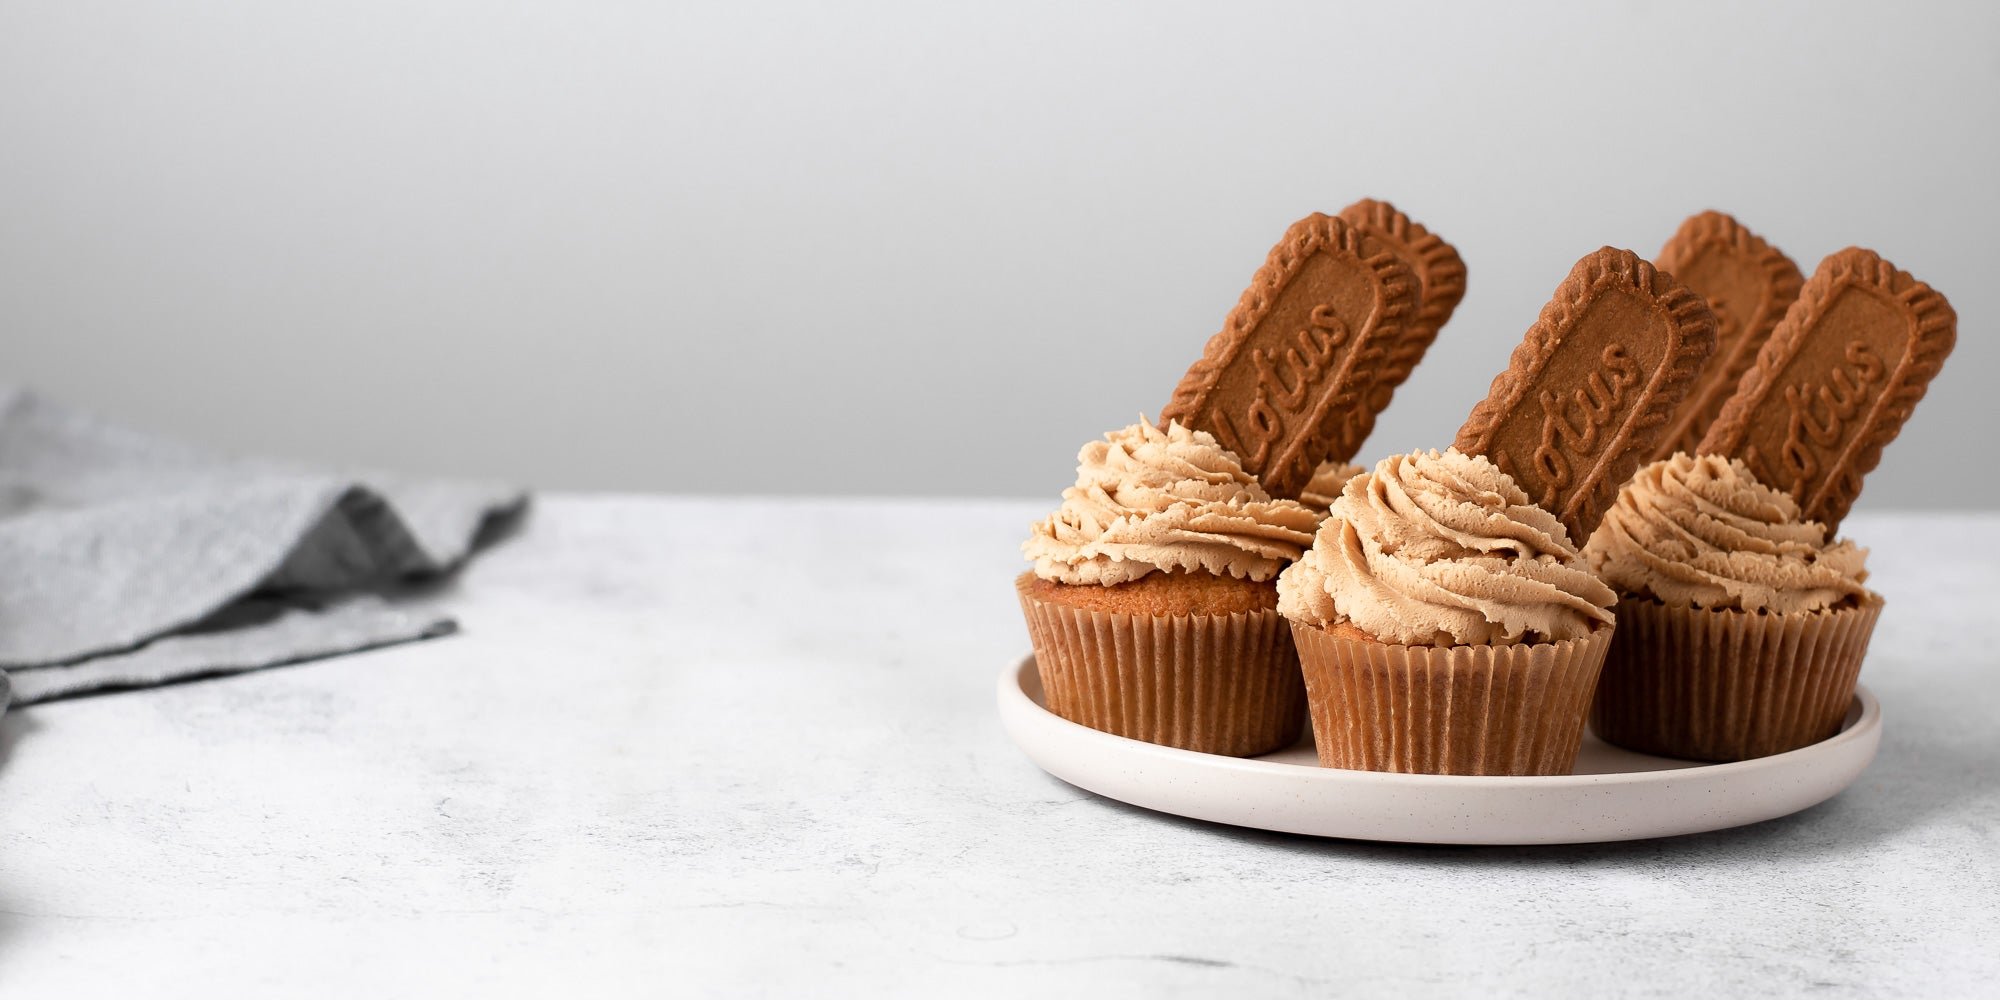 biscoff cupcakes on a plate